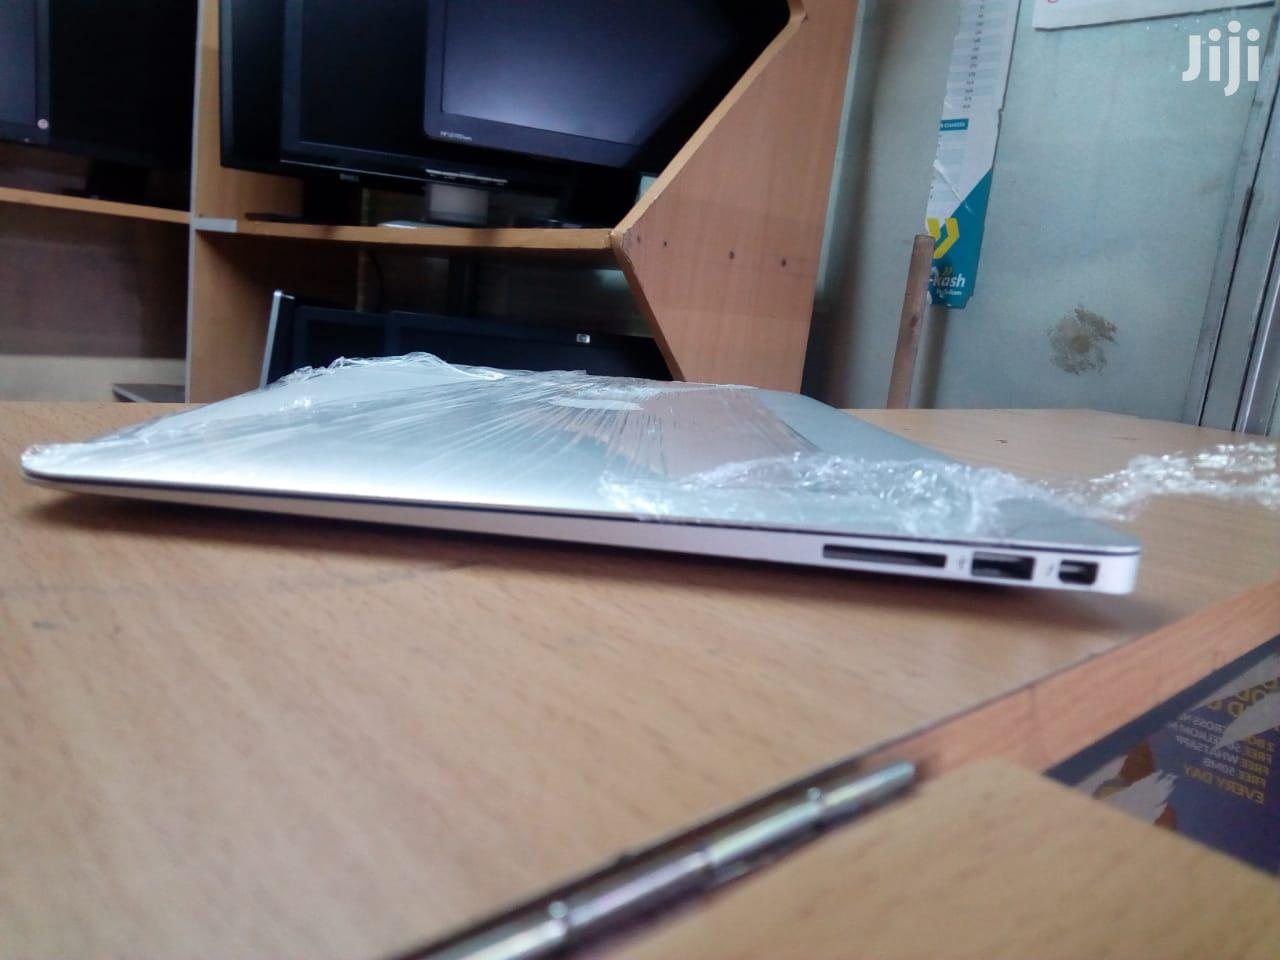 Archive: Apple Macbook Air 13 Inches 500Gb Ssd Core i5 4Gb Ram